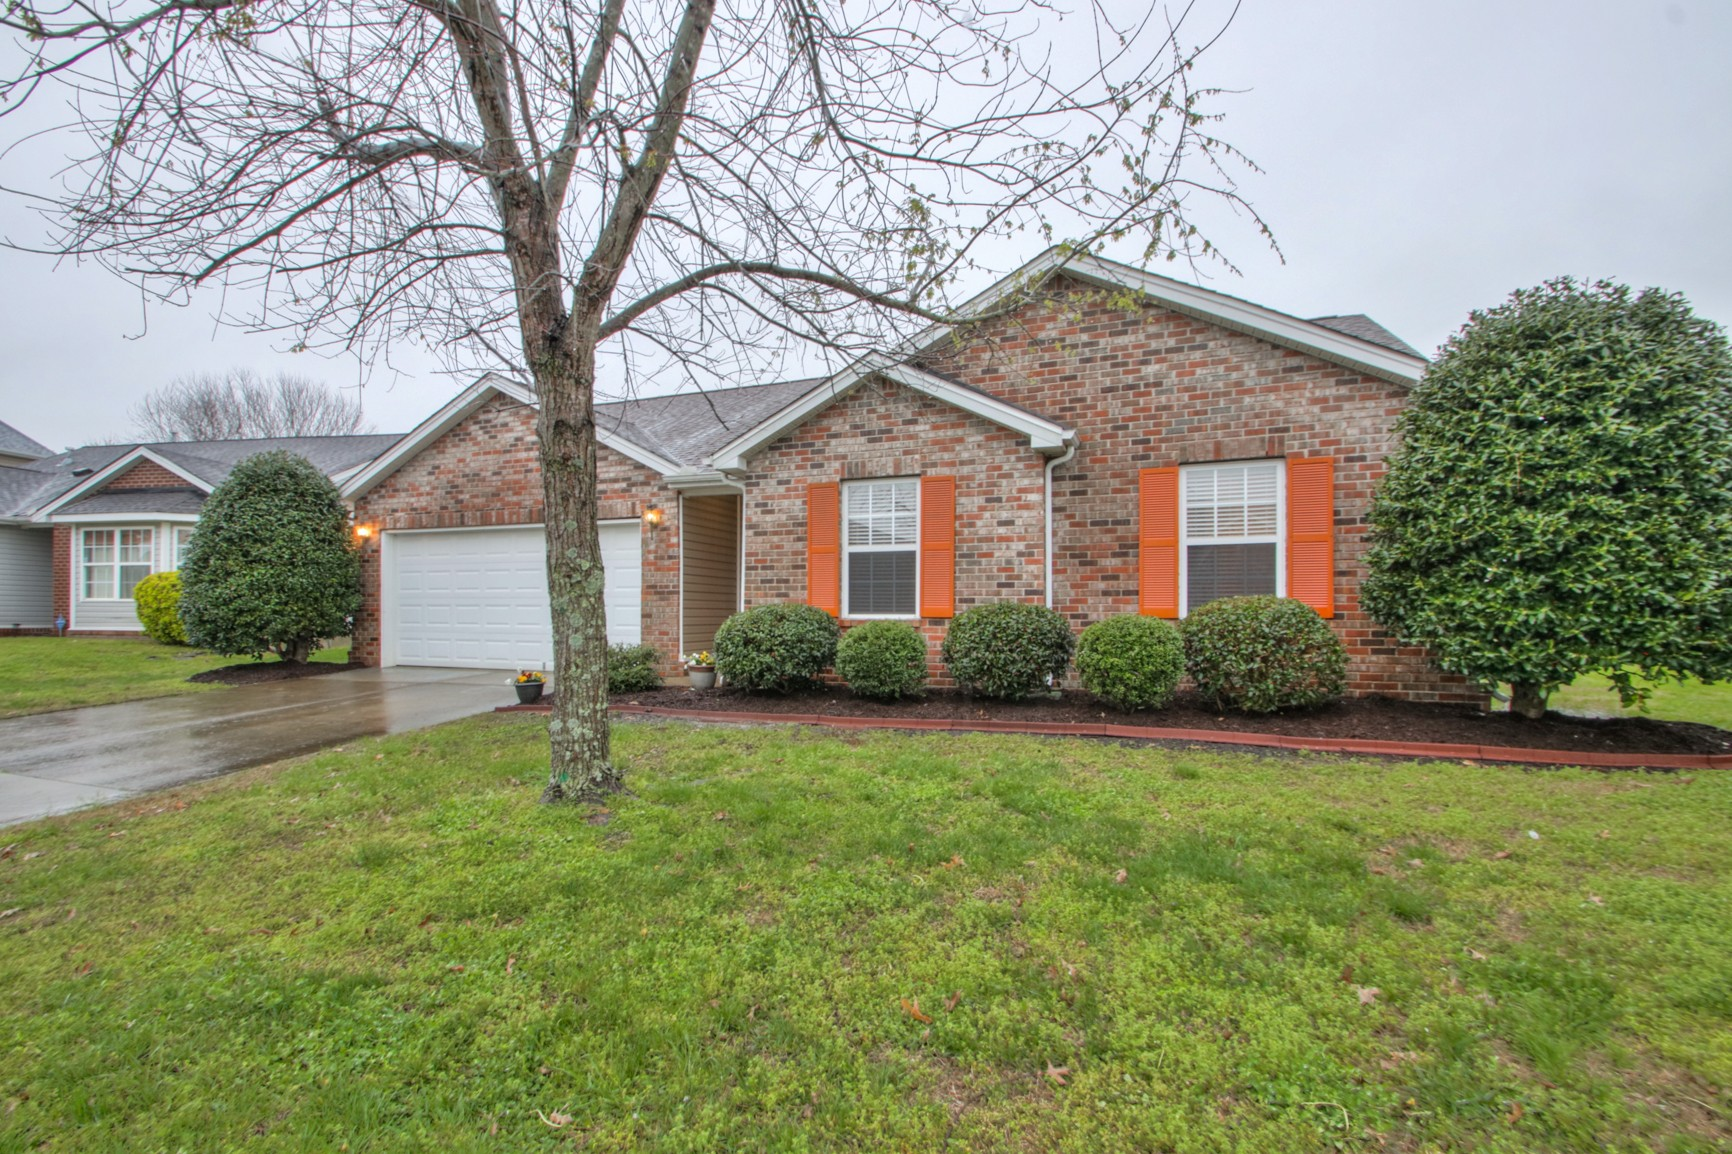 1012 Lowrey Pl, Spring Hill in Williamson County, T County, TN 37174 Home for Sale